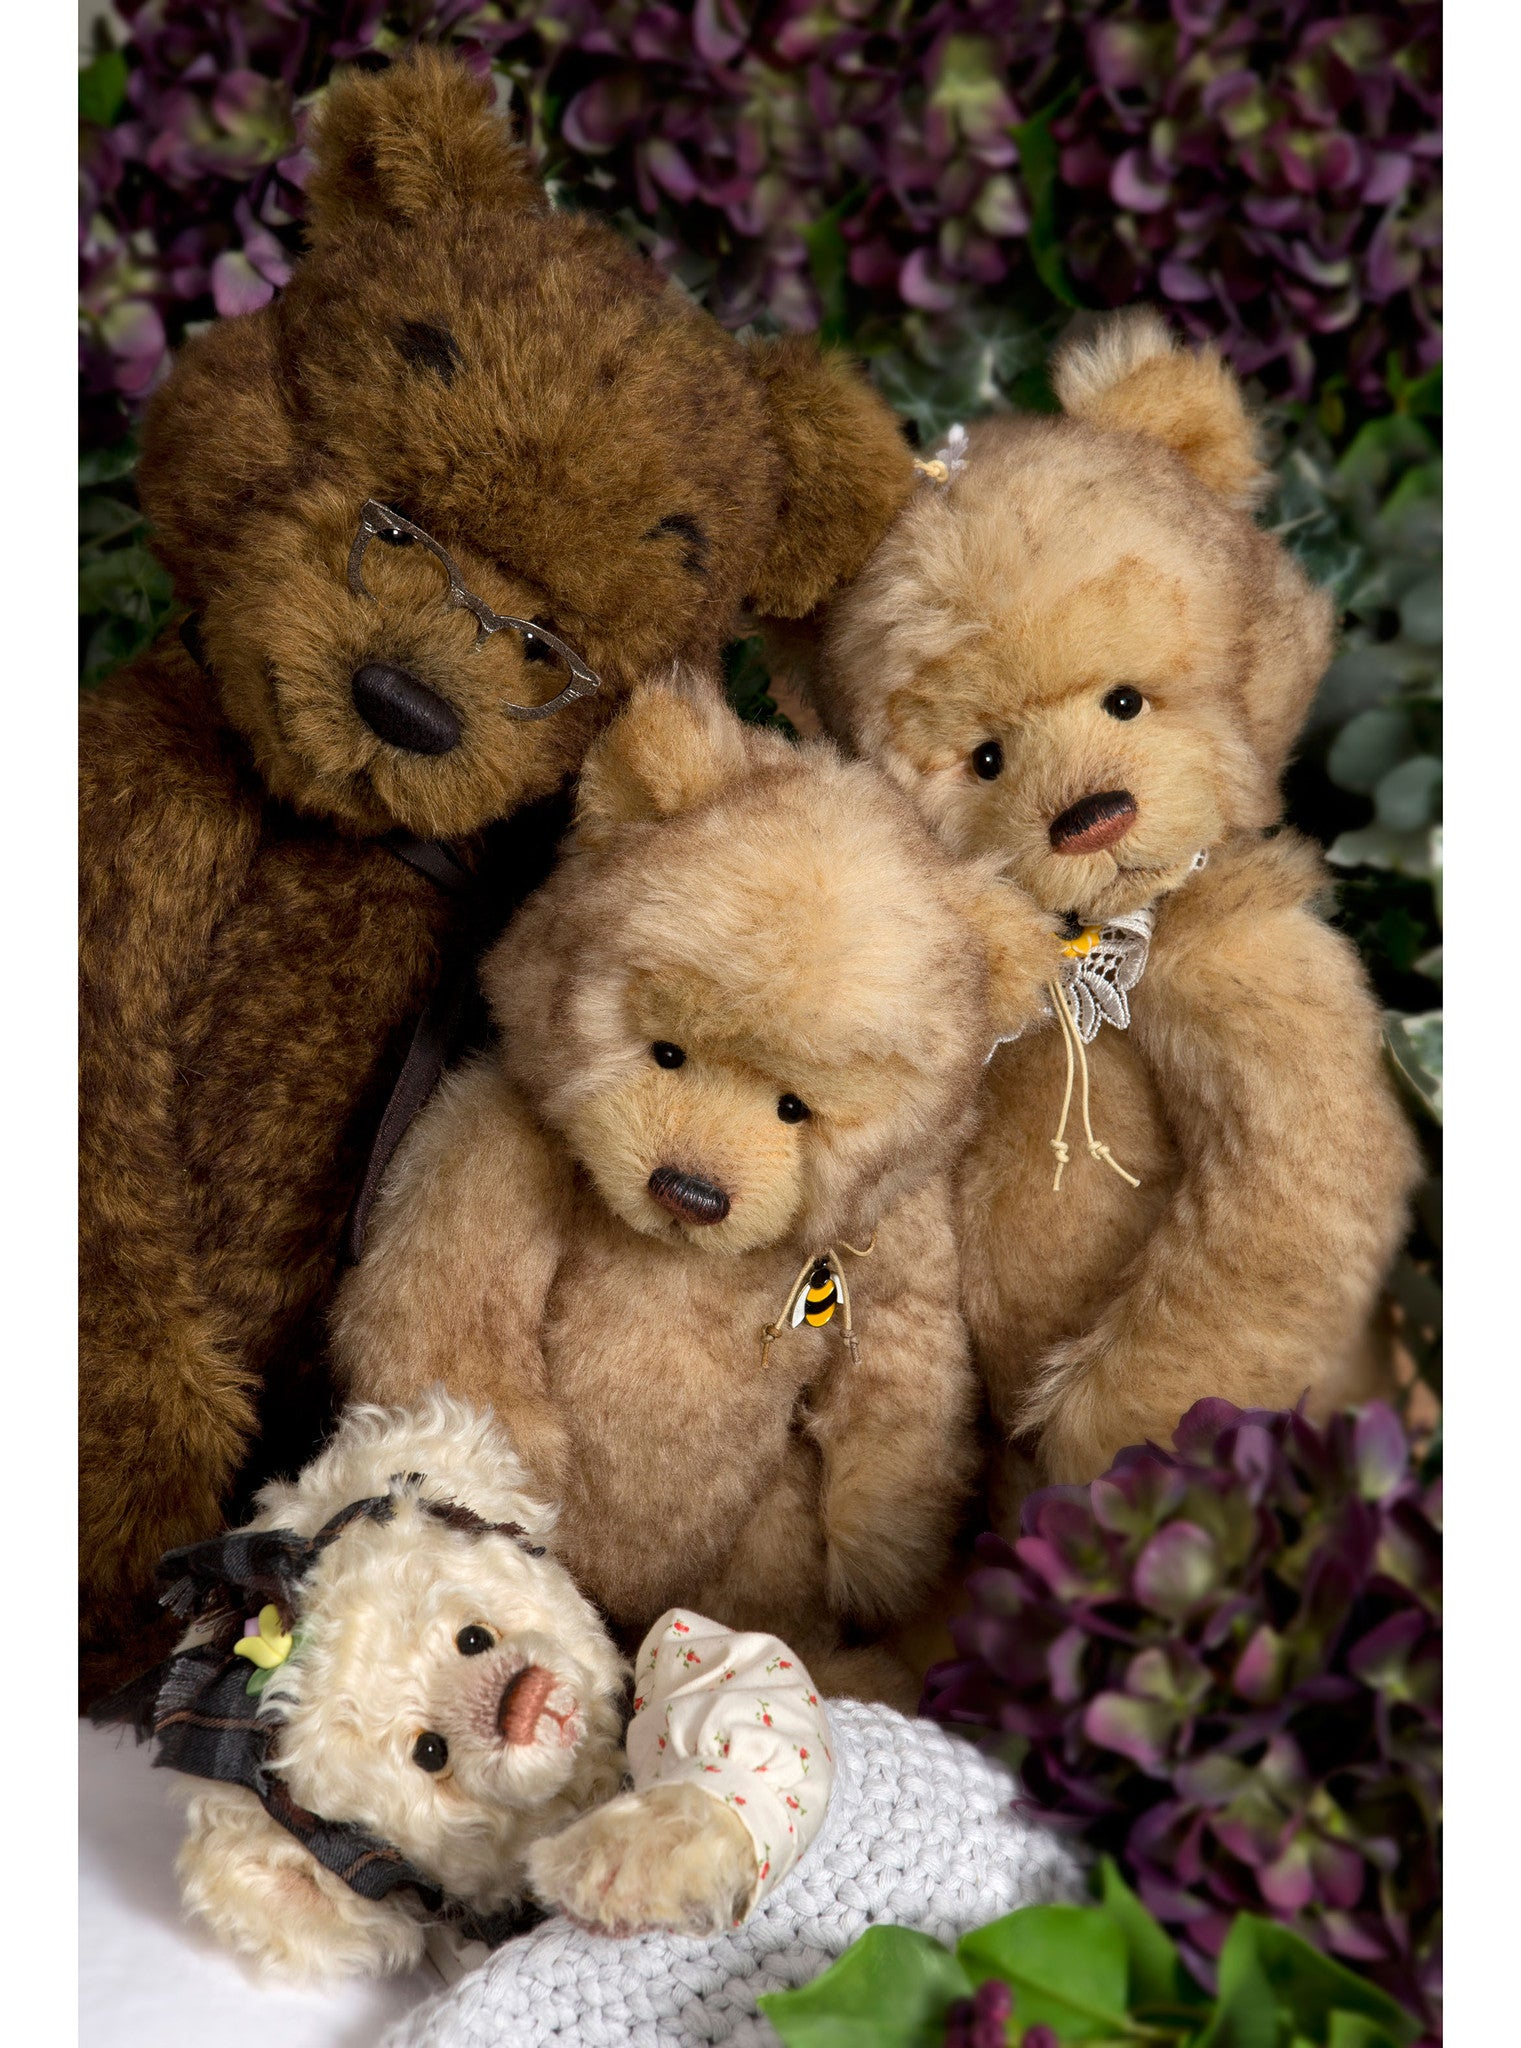 Goldilocks and the Three Bears by Charlie Bears